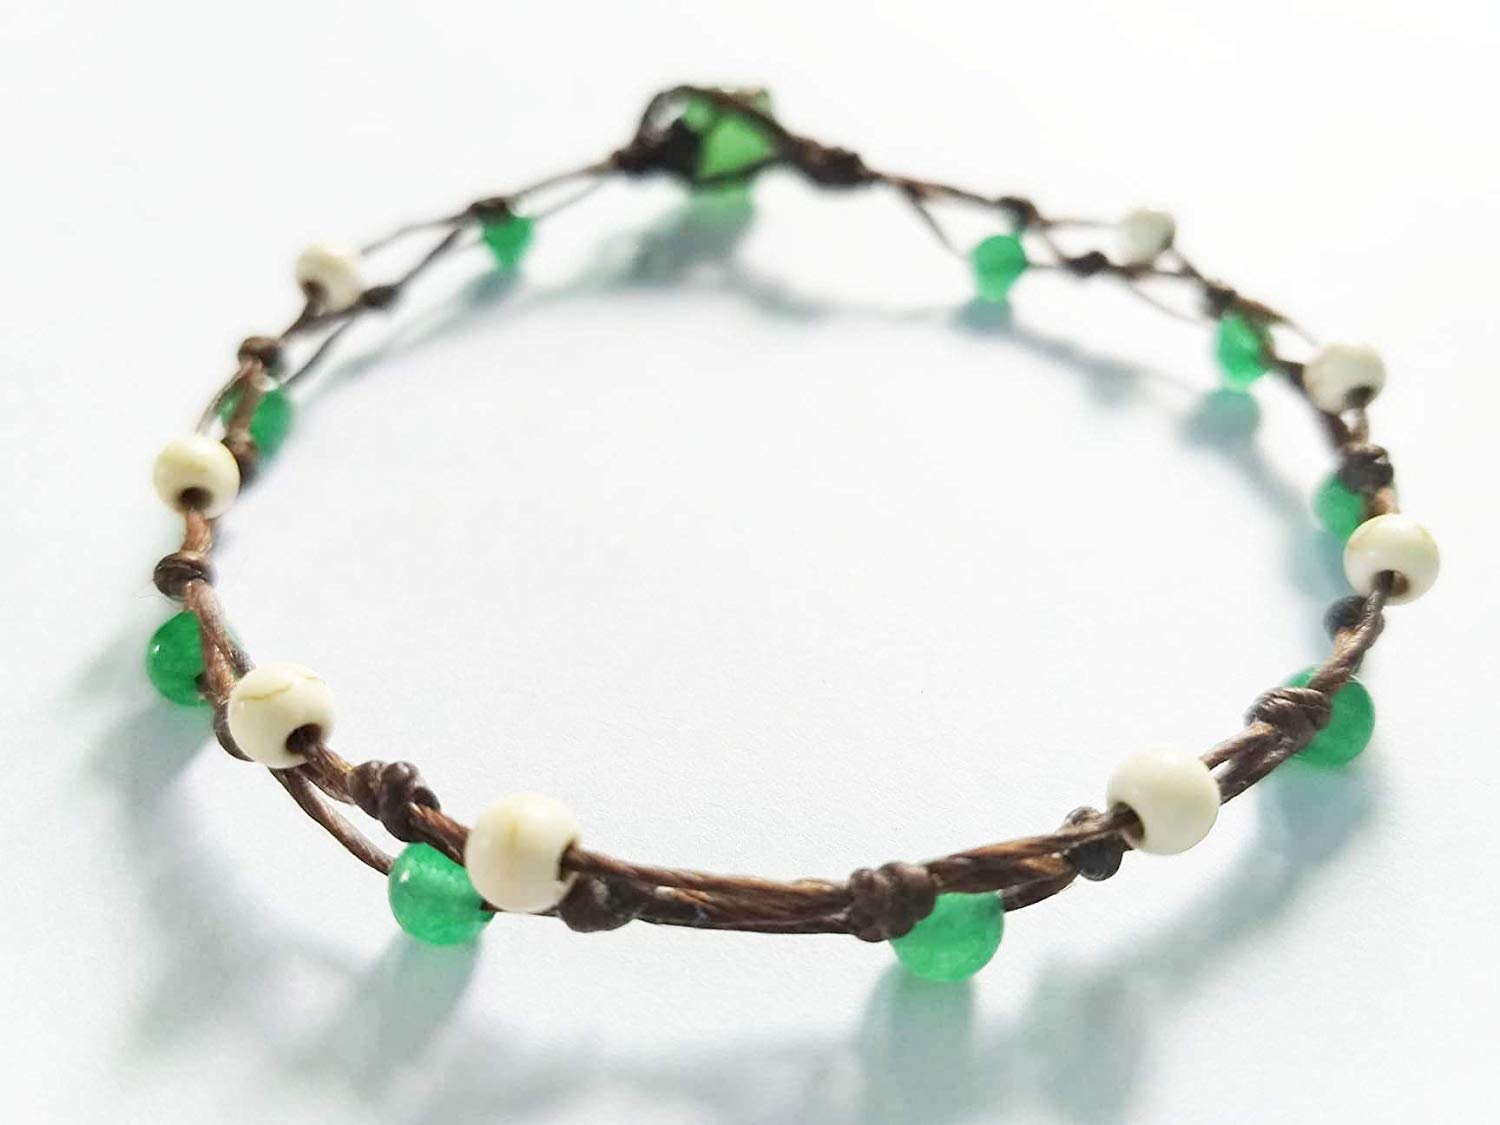 Anklet,Howlite stone anklets,Green jade stone anklets,Suitable for women as a gift for the heart. Or use it as a fashion.